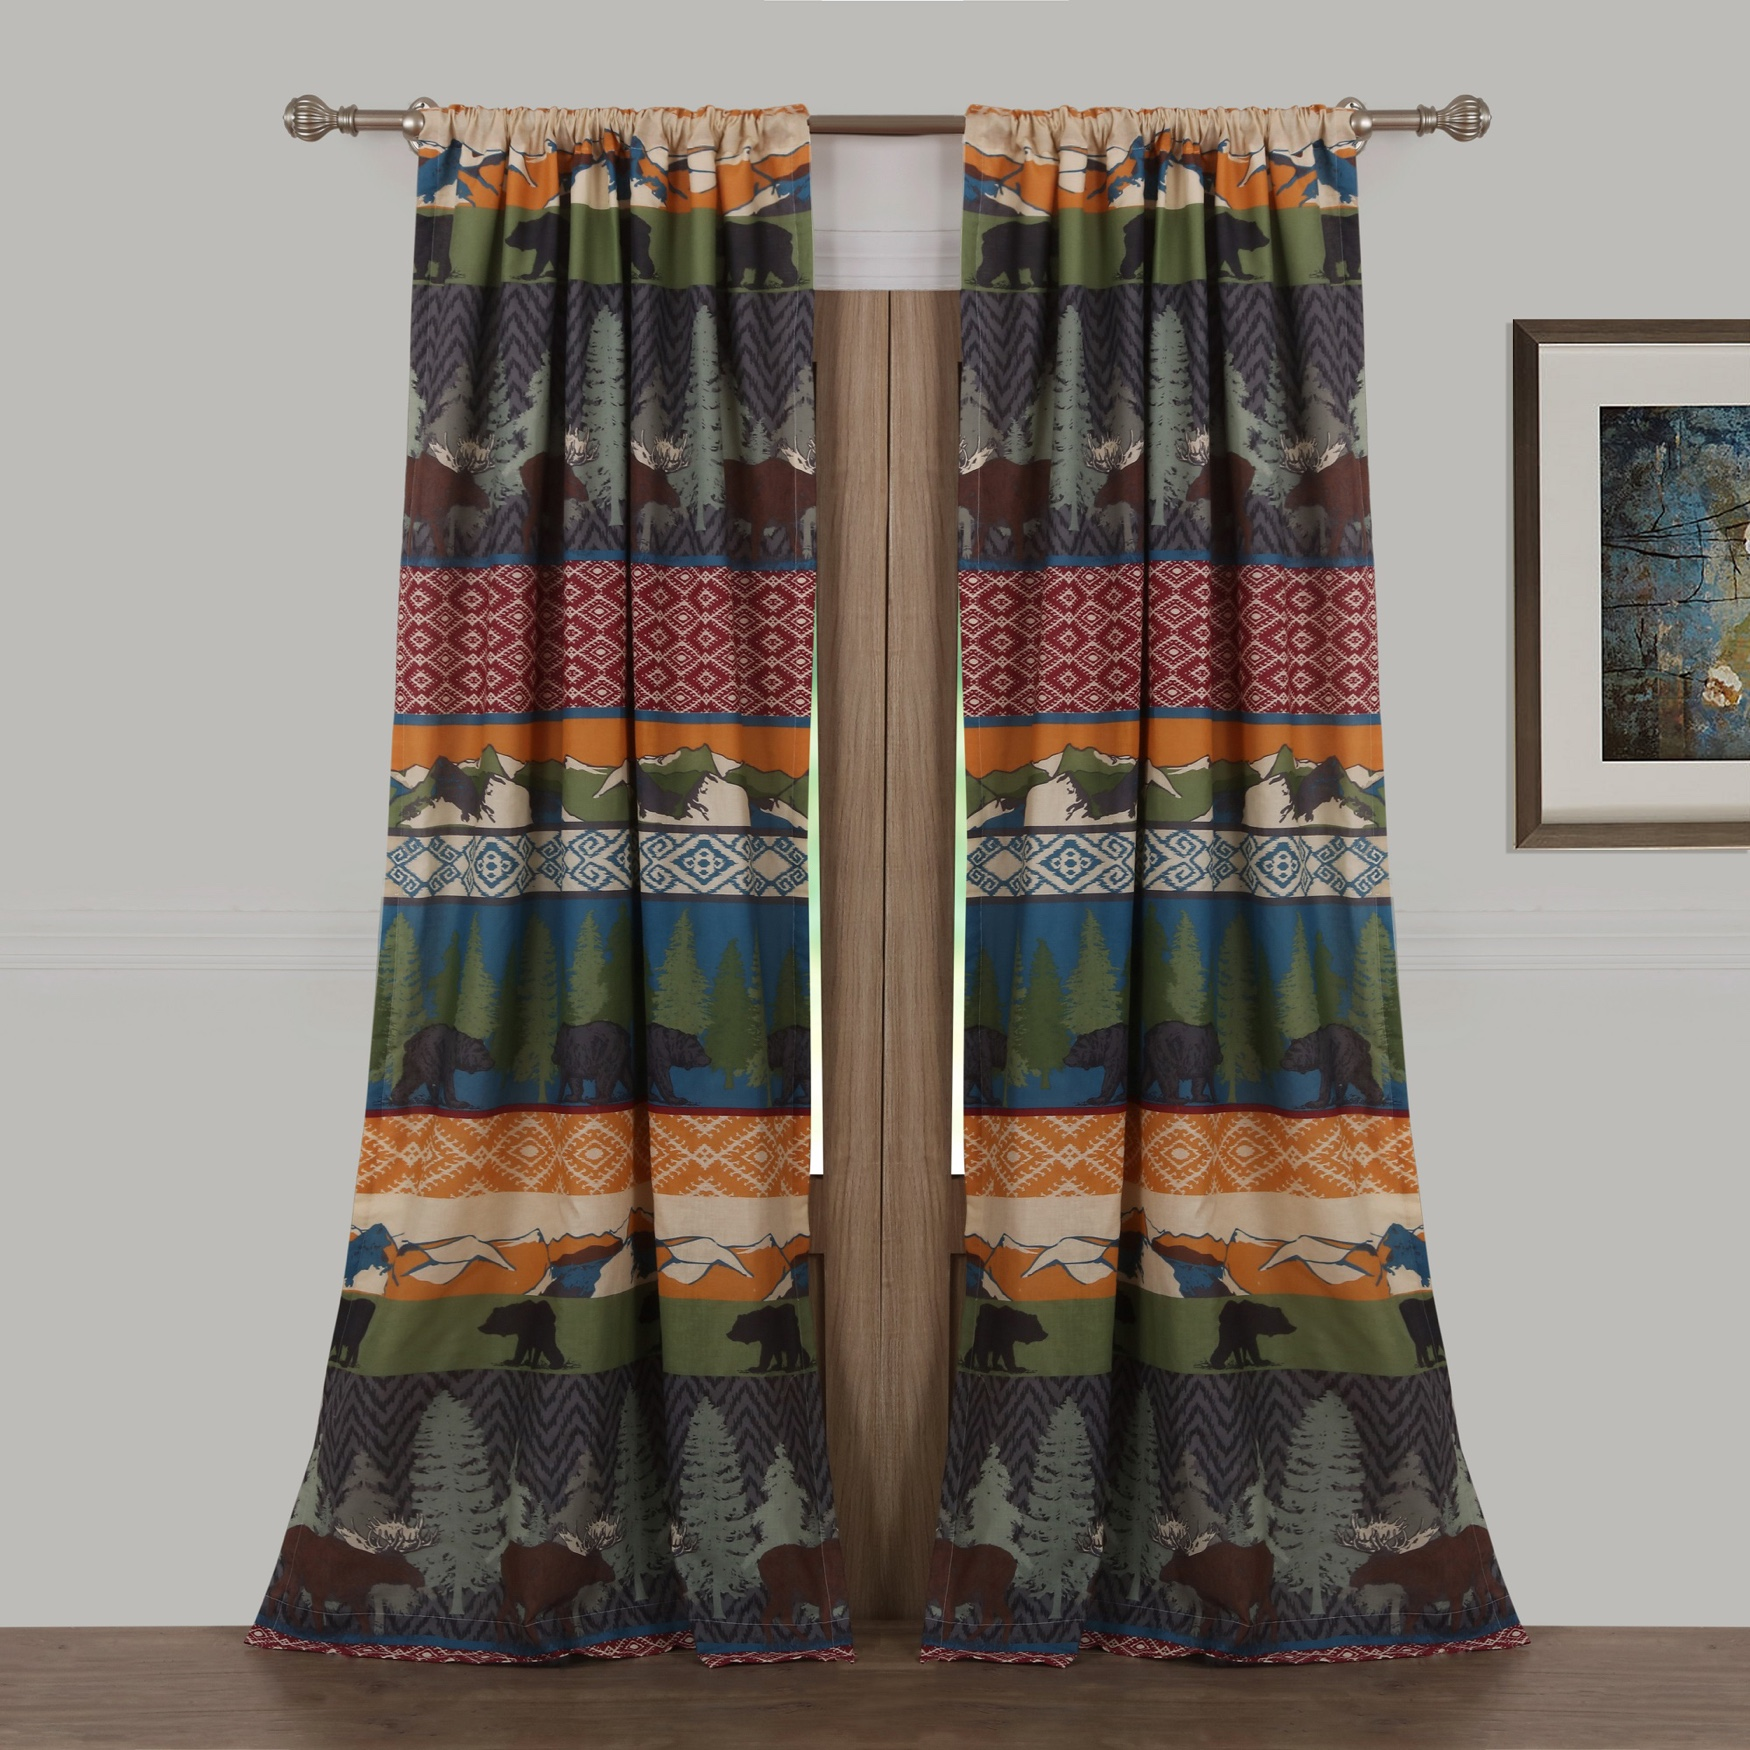 Black Bear Lodge Curtain Panel Pair by Greenland Home Fashions, MULTI